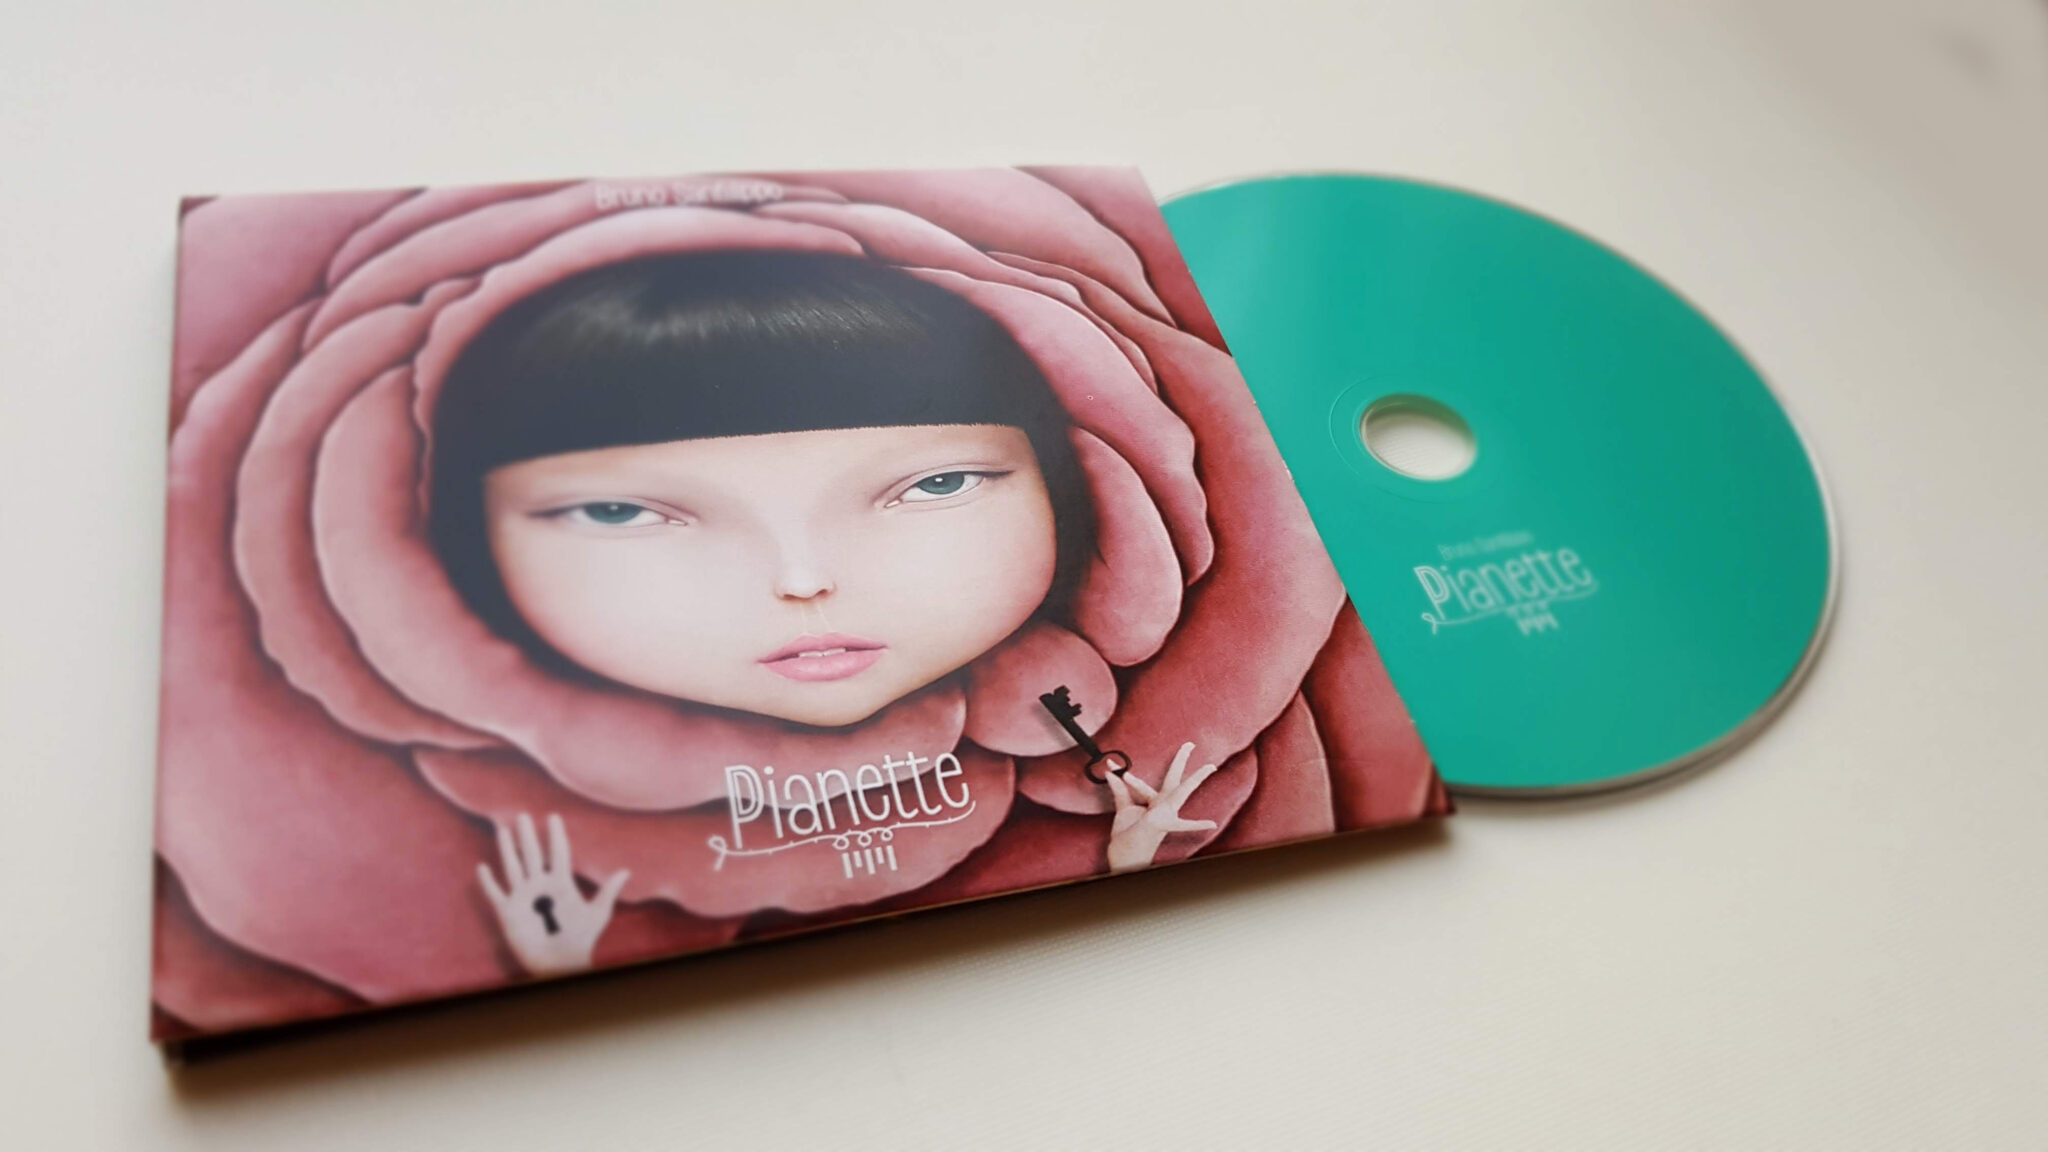 'Pianette' available now